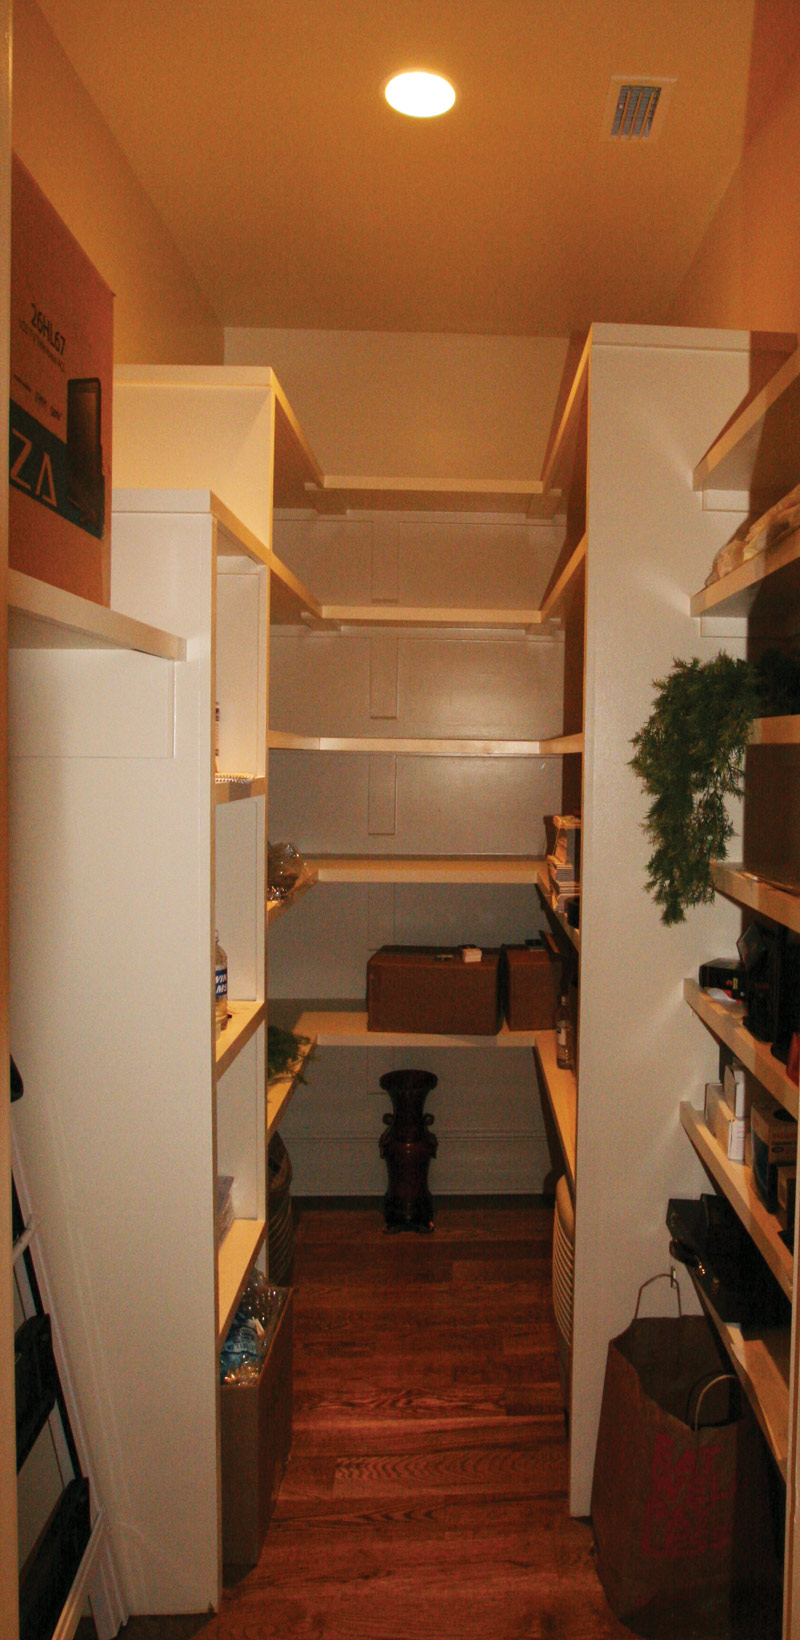 Country French Home Plan Closet Photo 01 024S-0025